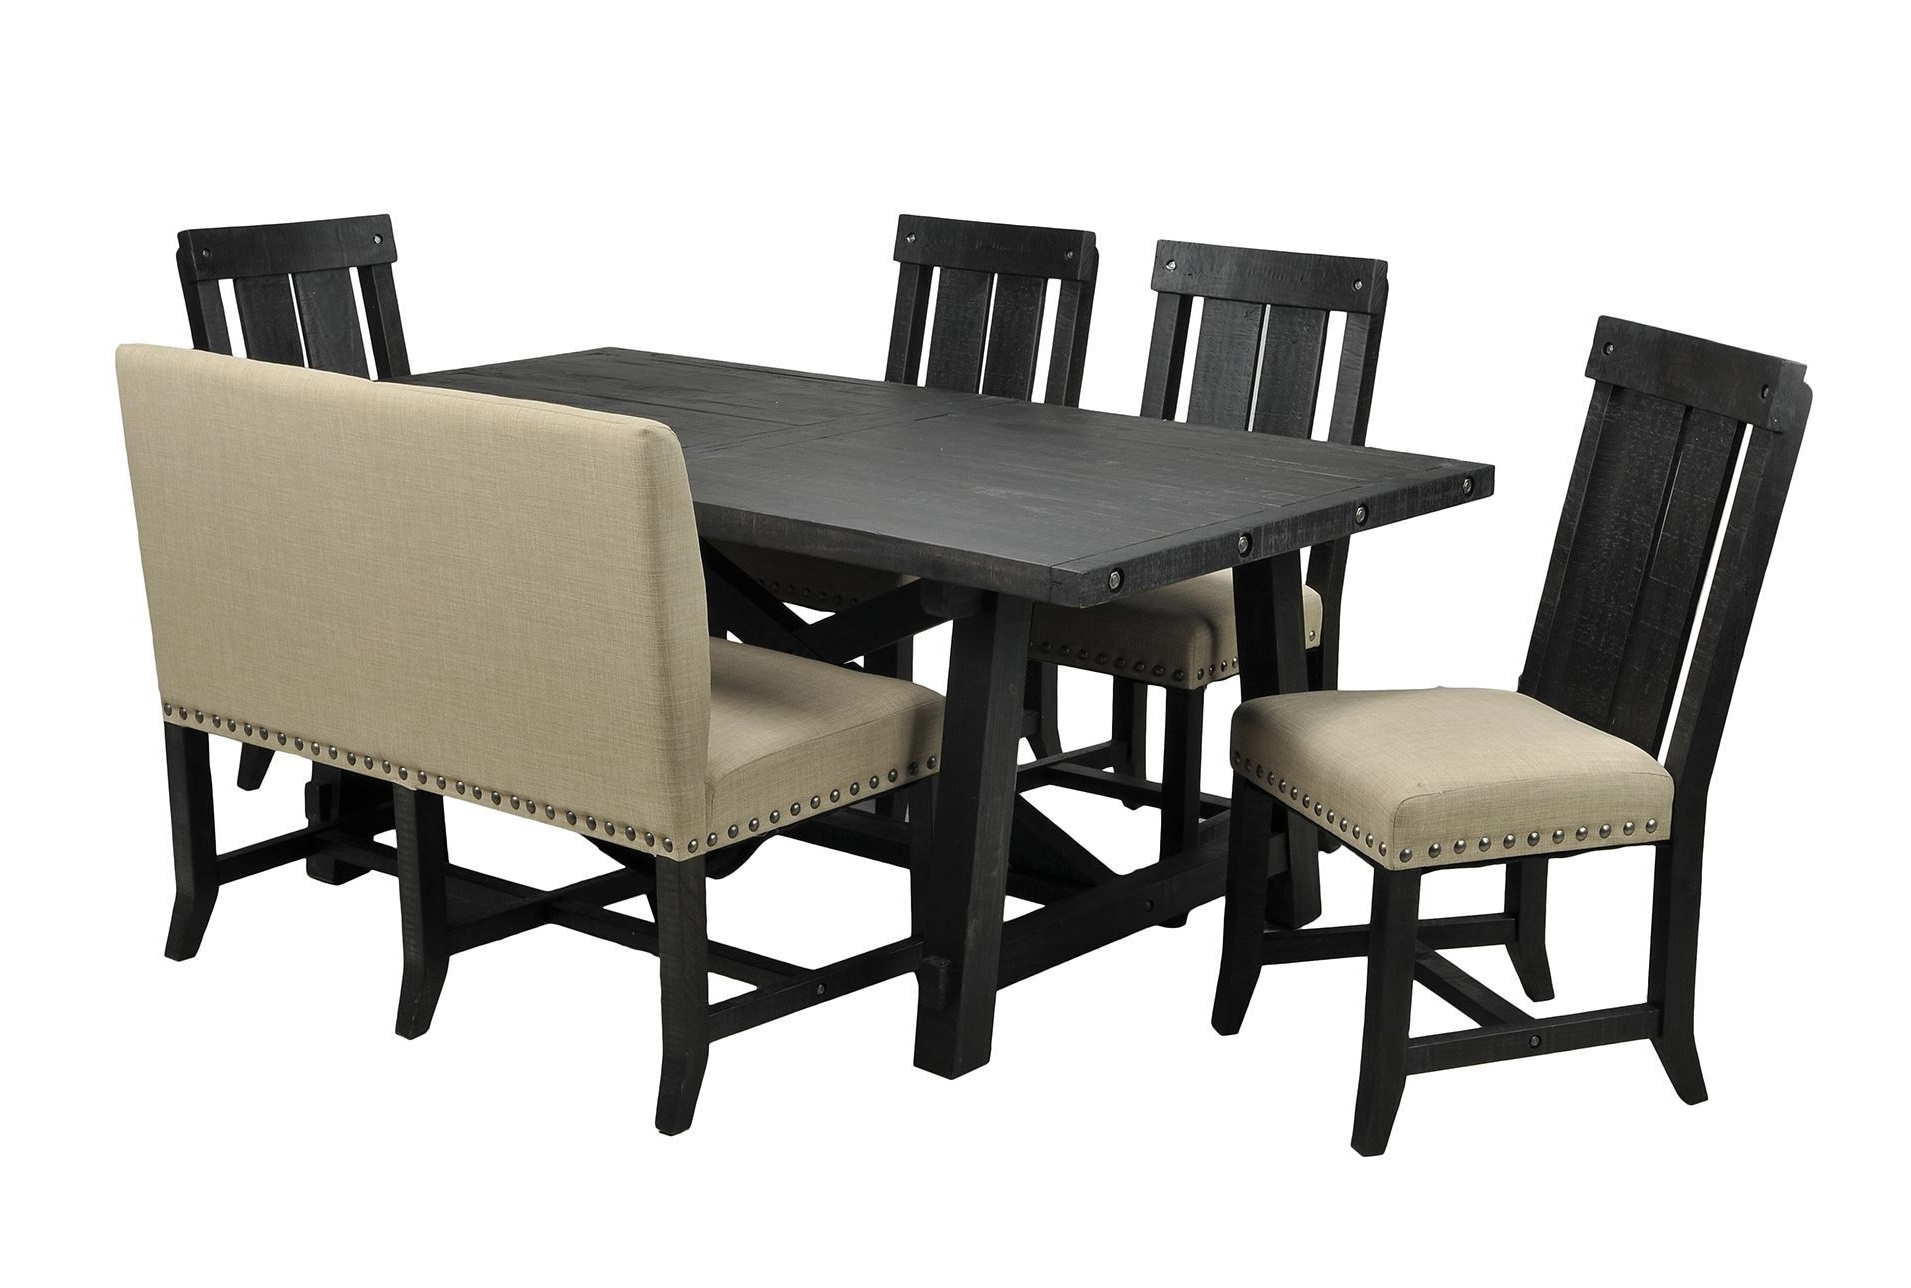 Jaxon 6 Piece Rectangle Dining Set W/bench & Wood Chairs, Café intended for Current Jaxon Grey 6 Piece Rectangle Extension Dining Sets With Bench & Uph Chairs